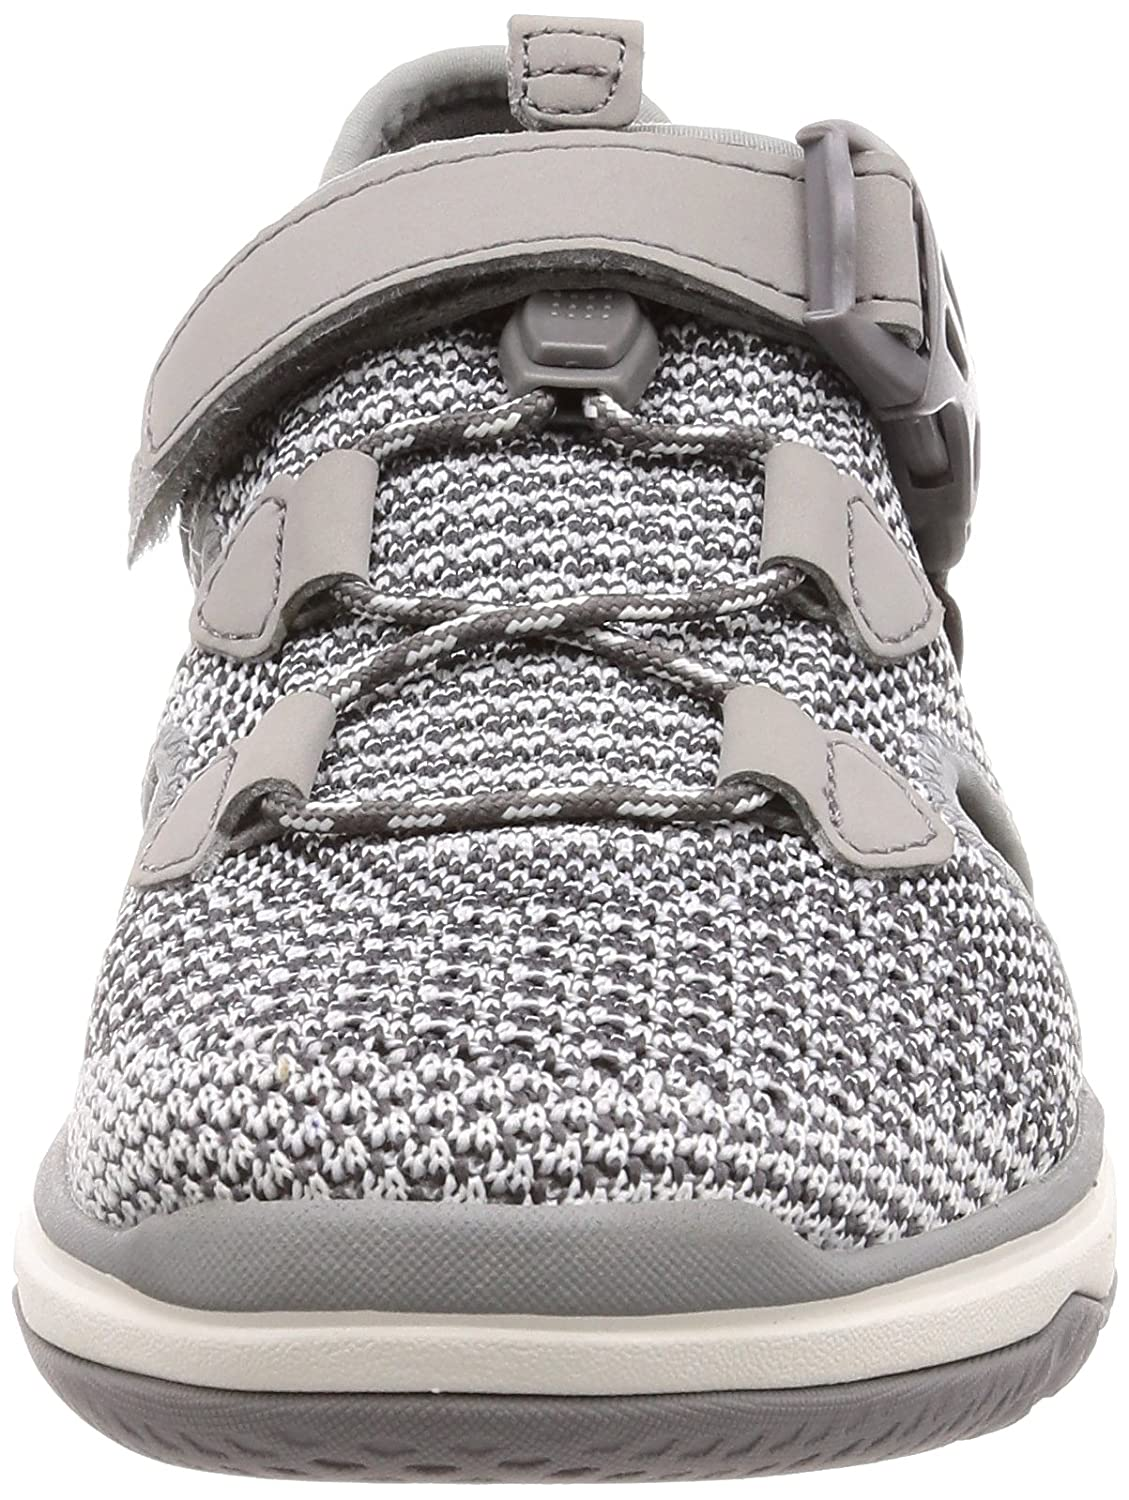 Teva - Women's Terra-Float Travel 5 Knit - Black - 5 Travel B071XHR9Q6 6 B(M) US|Wild Dove 5b9163